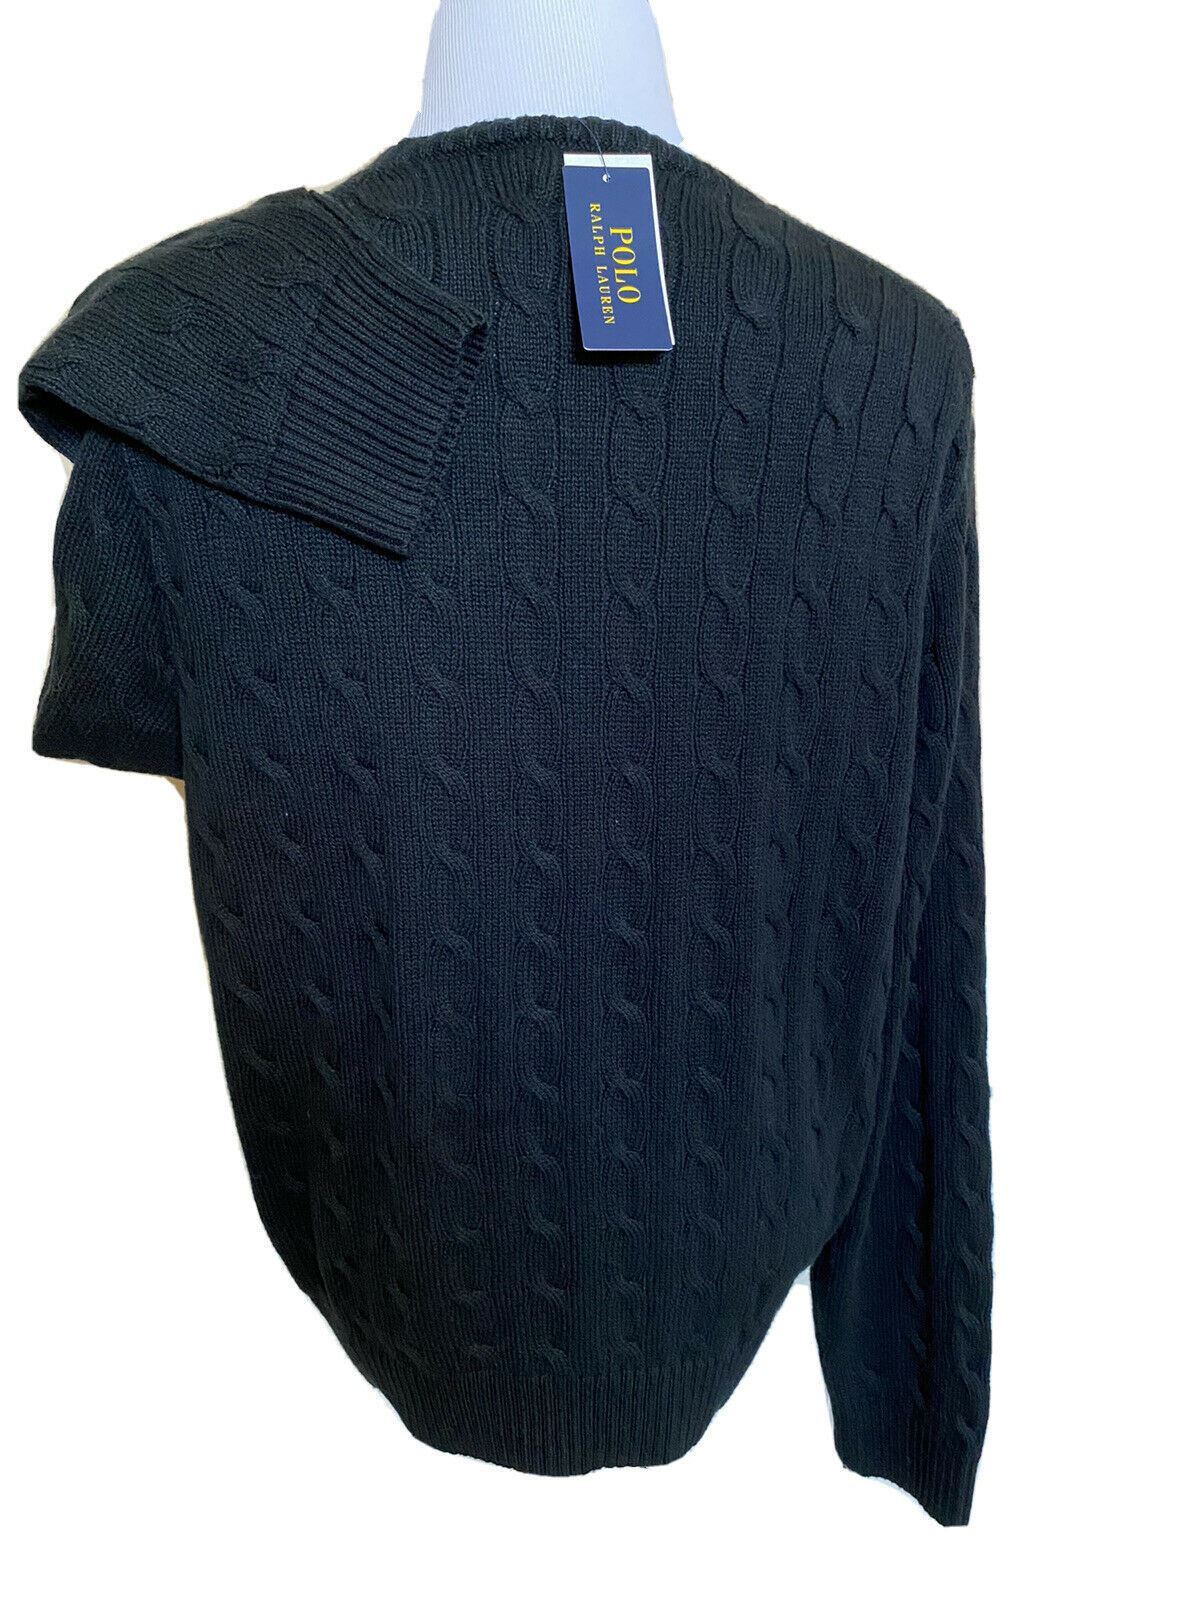 NWT $89 Polo Ralph Lauren Mens Navy Knit Cotton Sweater 2XL